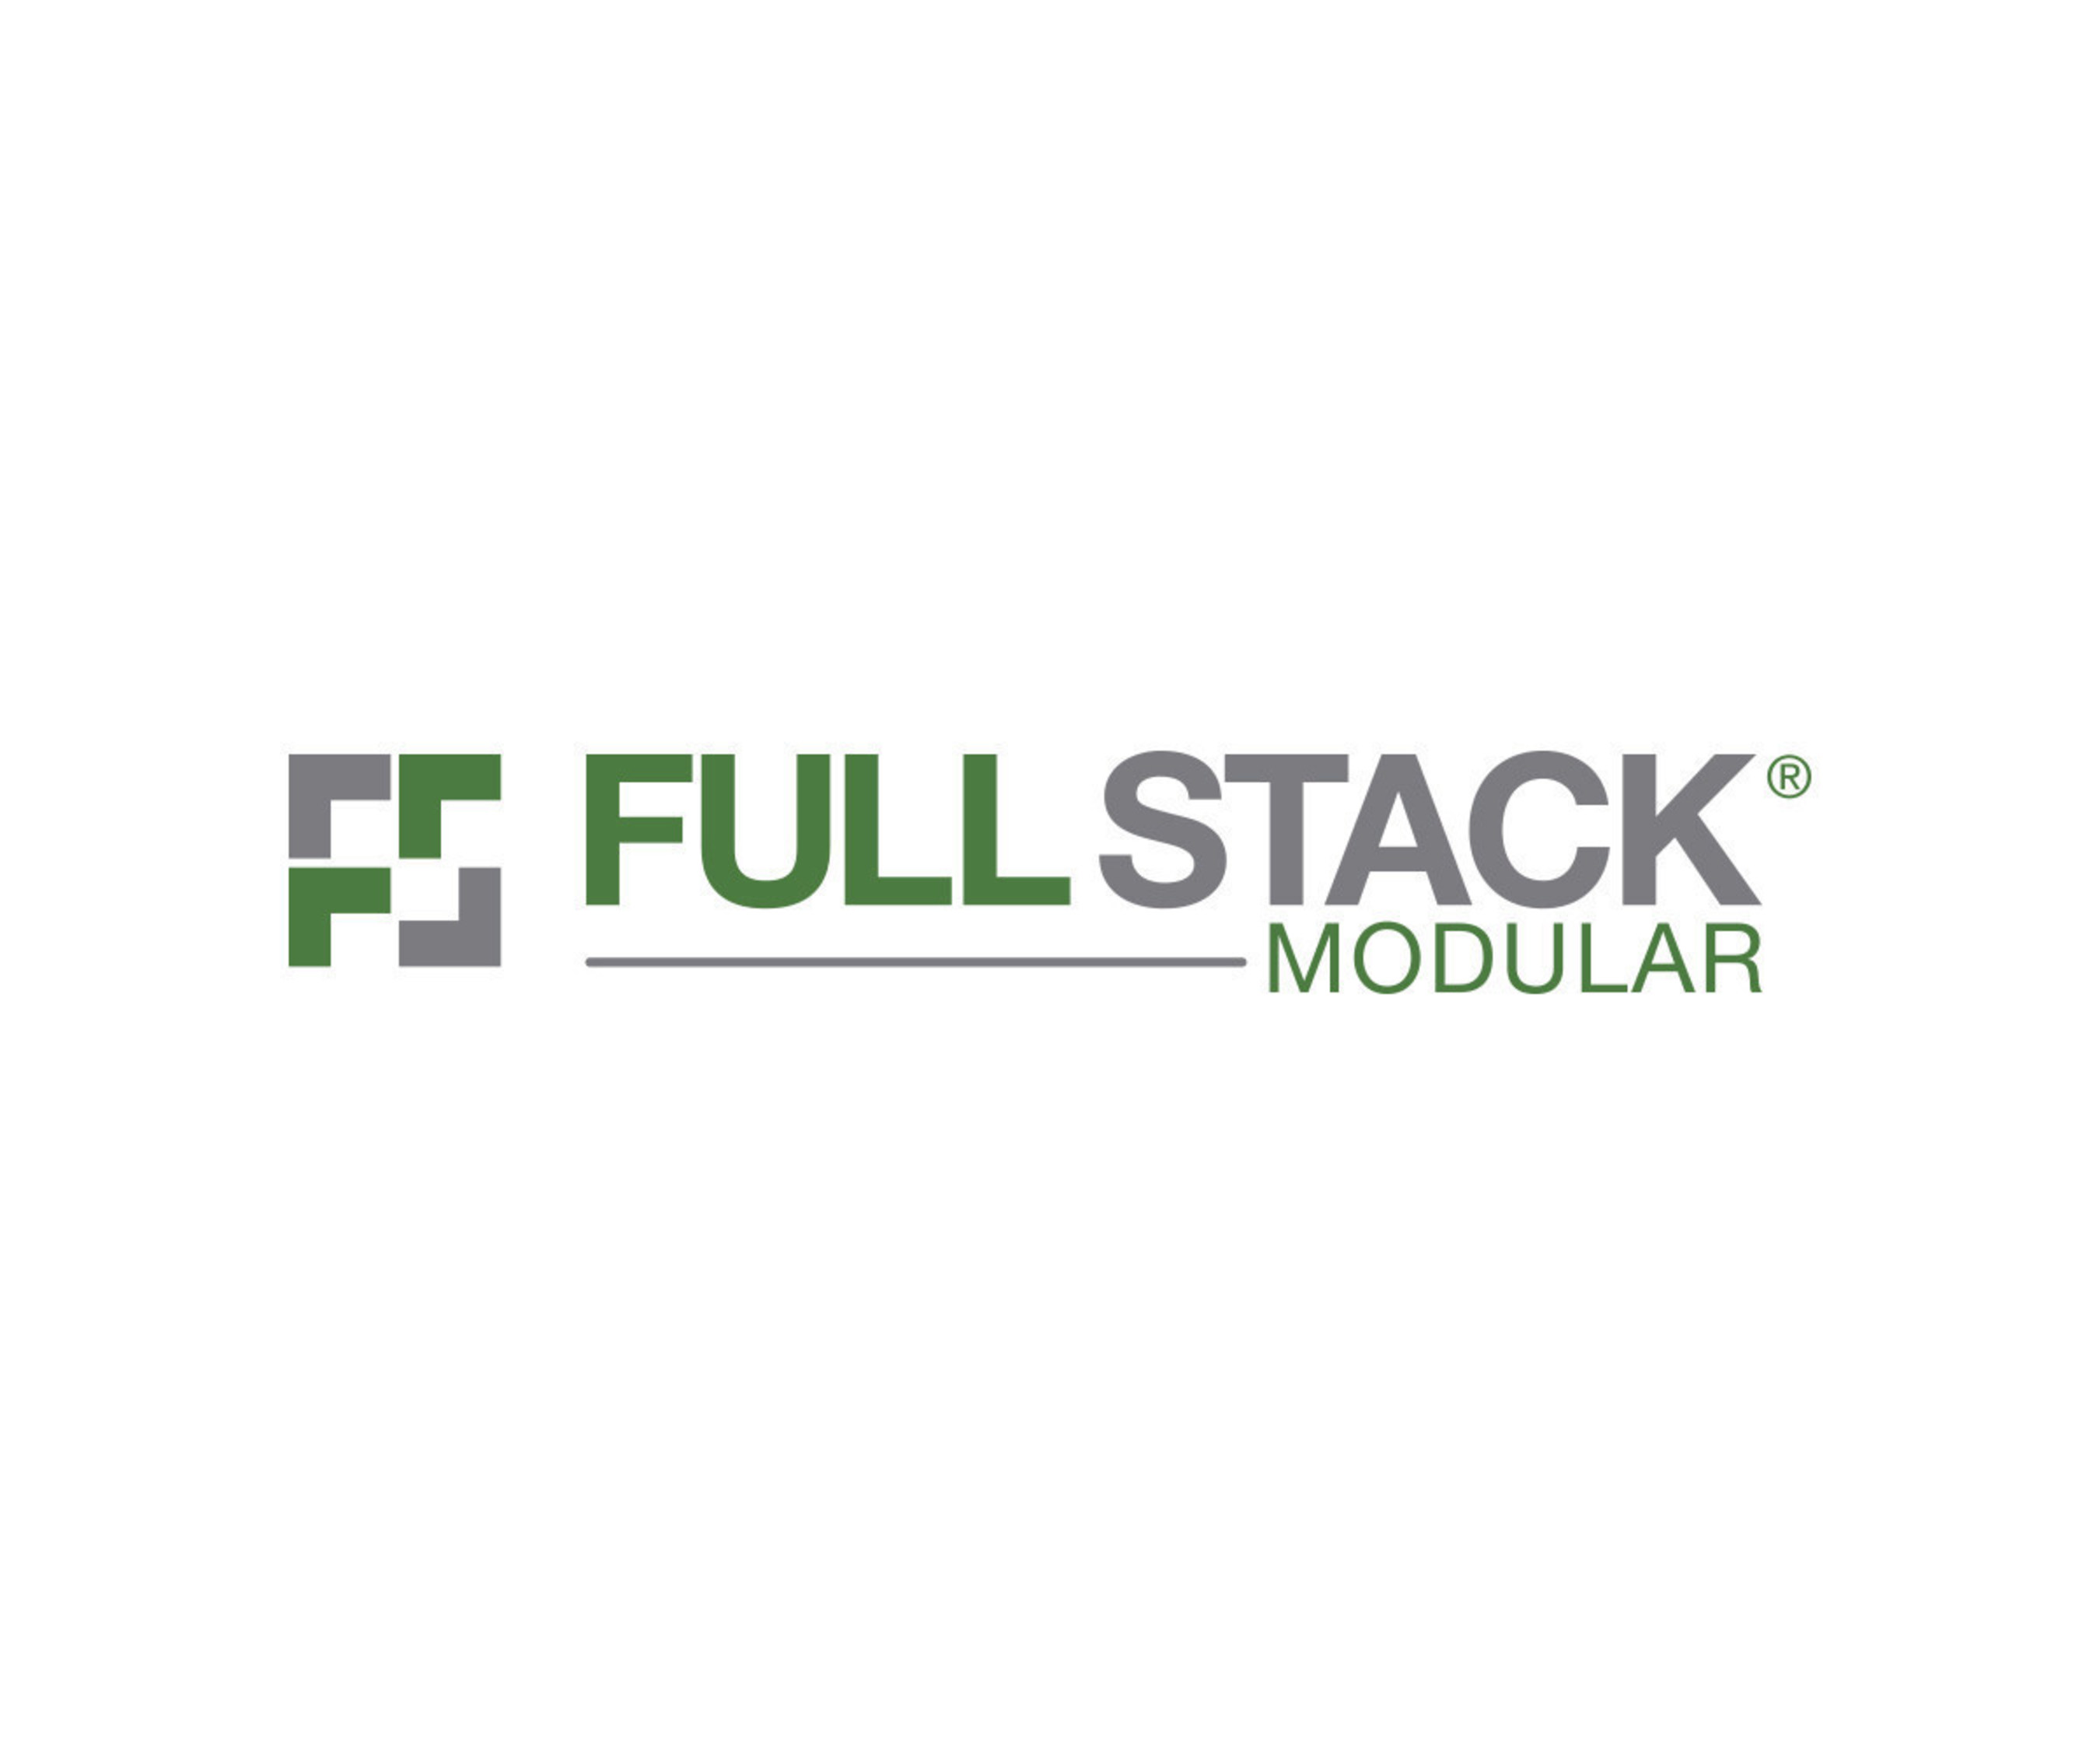 Full Stack Modular LLC Purchases Core Assets of FC Modular, LLC from Forest City Ratner Companies